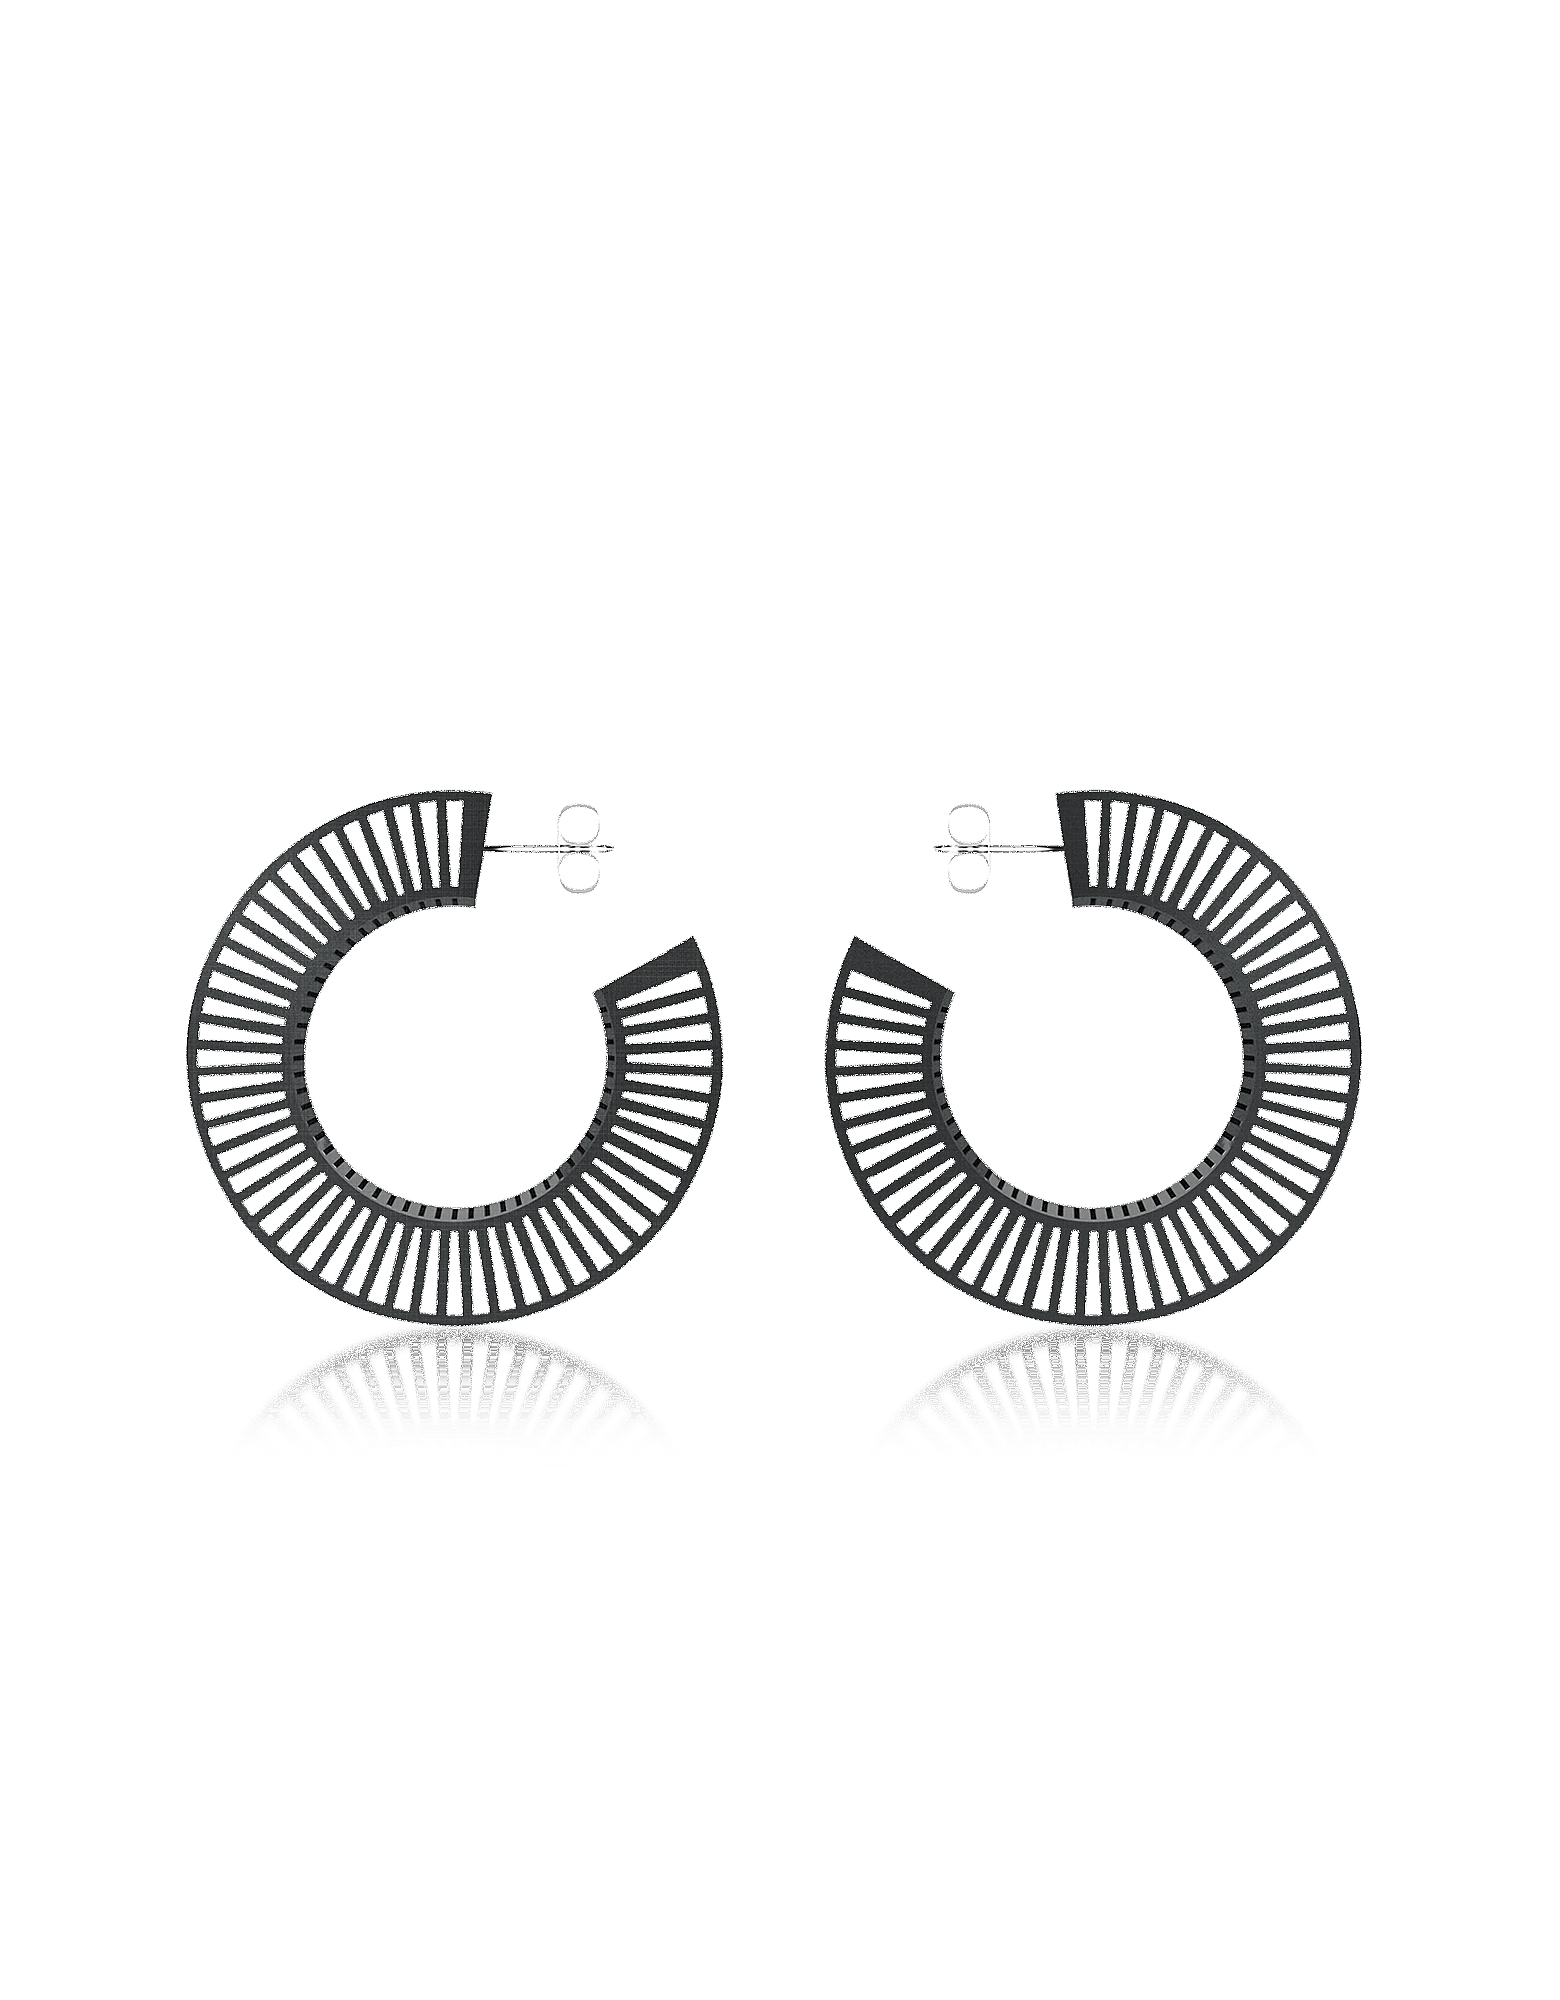 Vojd Studios Earrings, Phase Black Hoop Earrings